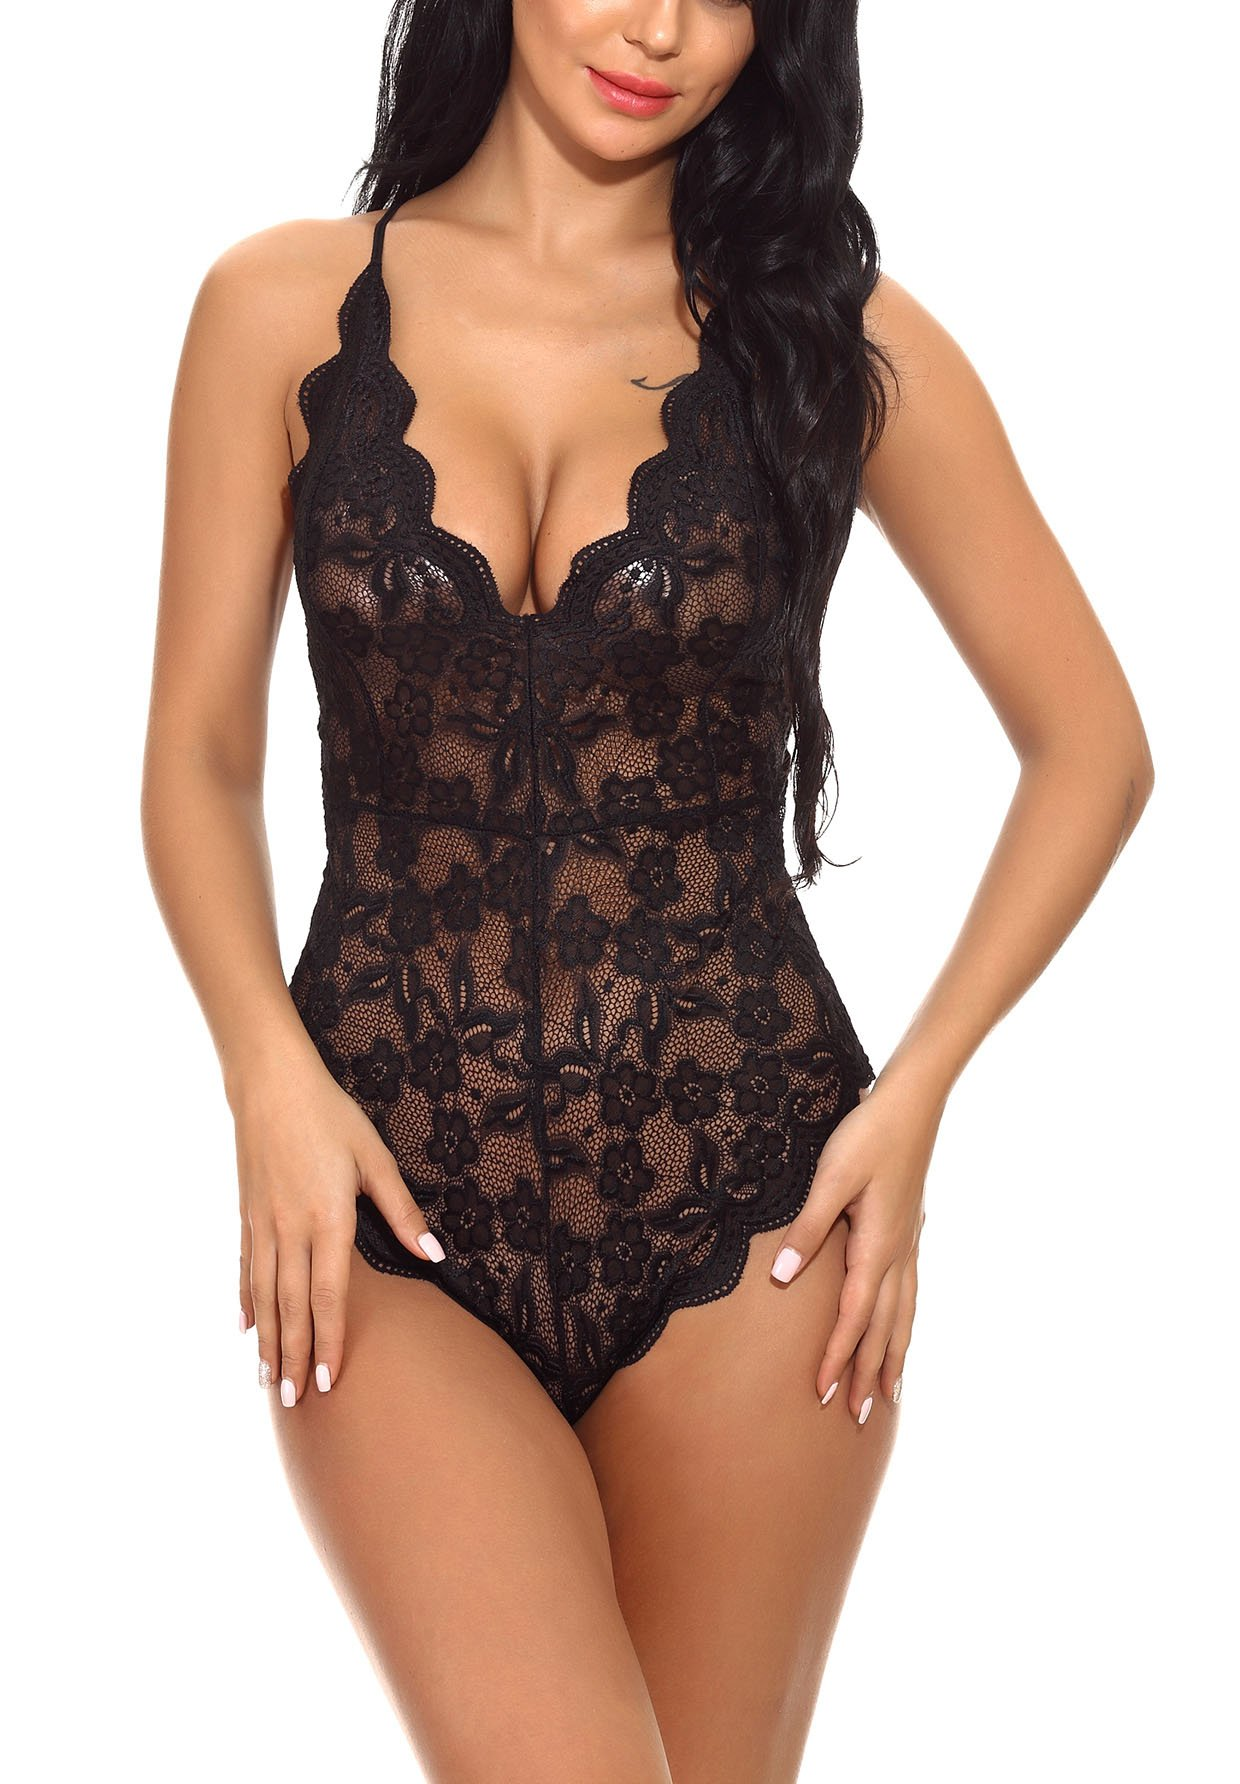 bcc7201ac Womens One Piece Lingerie Teddy Bodysuit Nightwear Lace Babydoll product  image